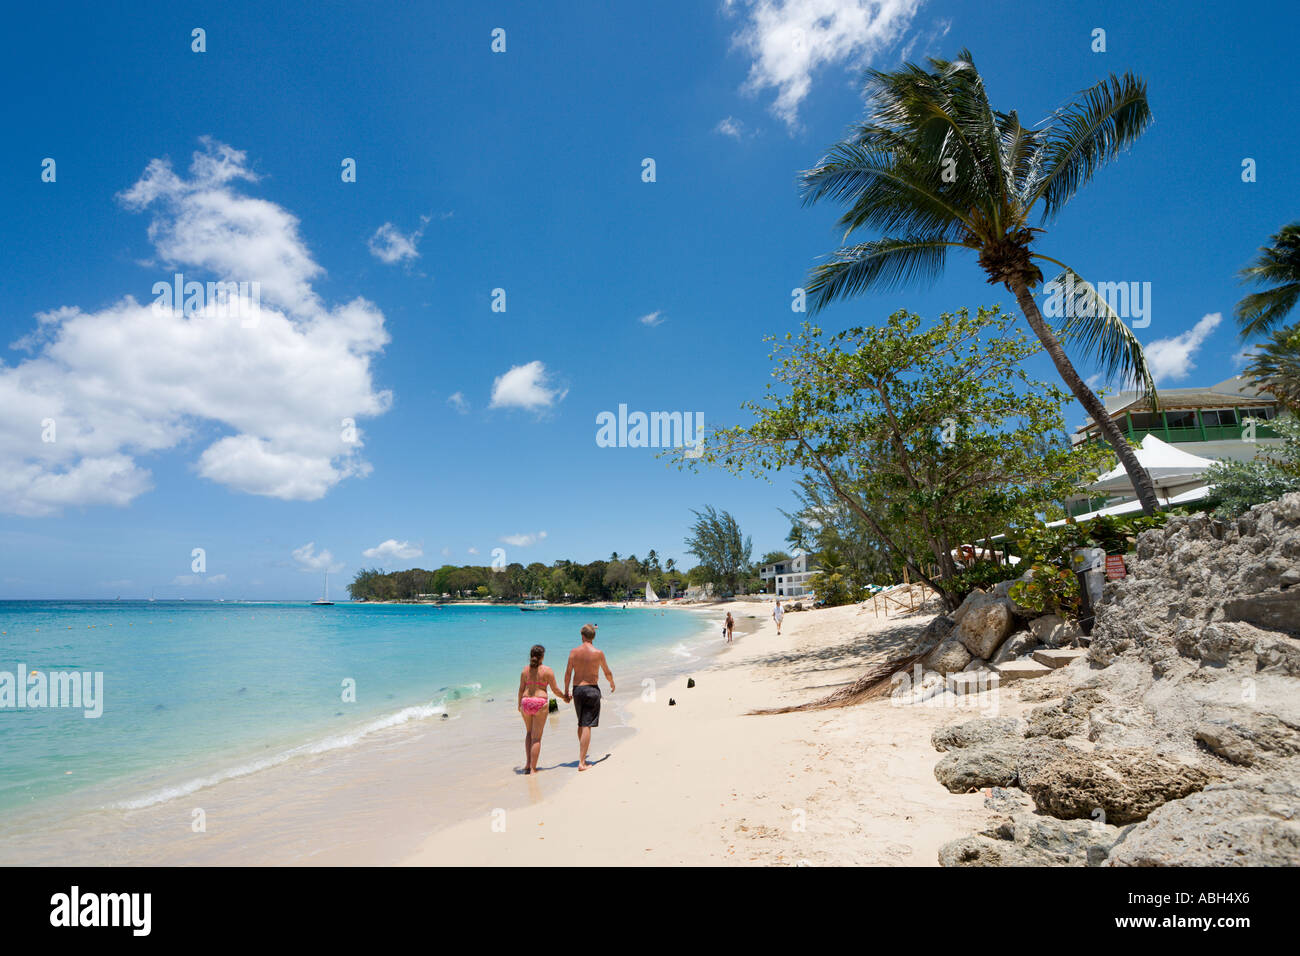 Barbados. Couple on the beach at Holetown, West Coast, Barbados, Lesser Antilles, West Indies, Caribbean - Stock Image